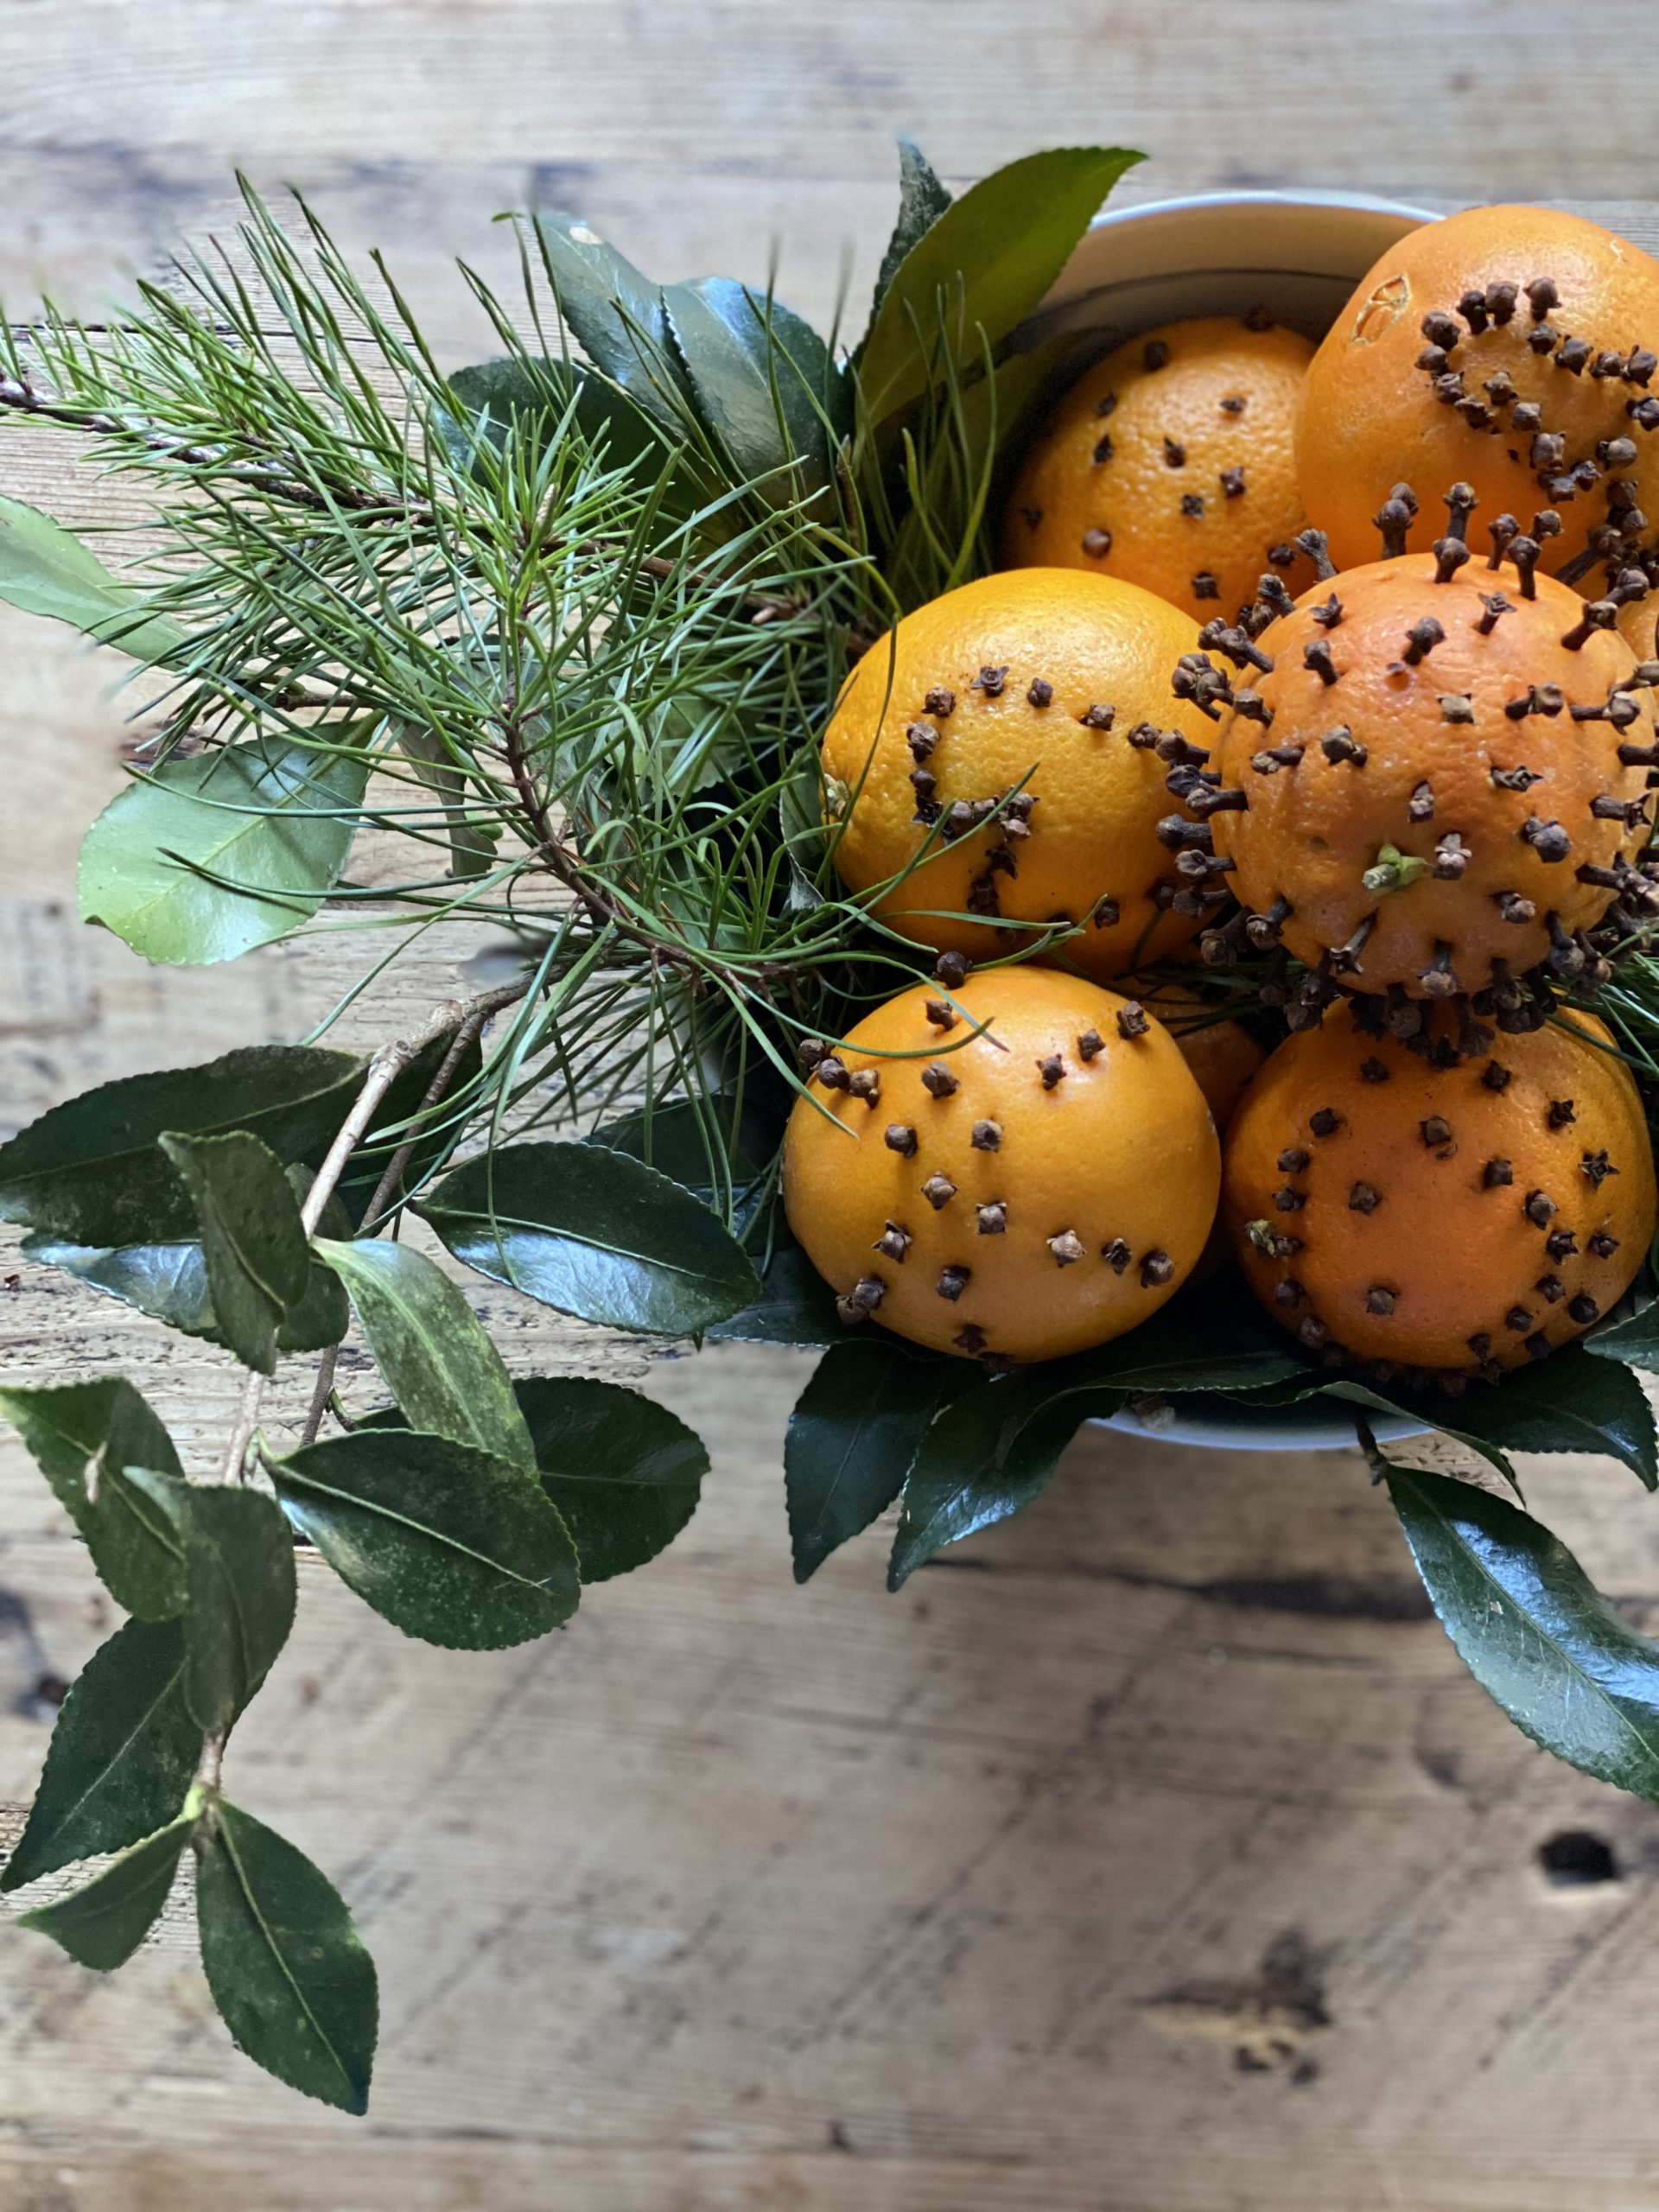 orange-cloves-Christmas-decor